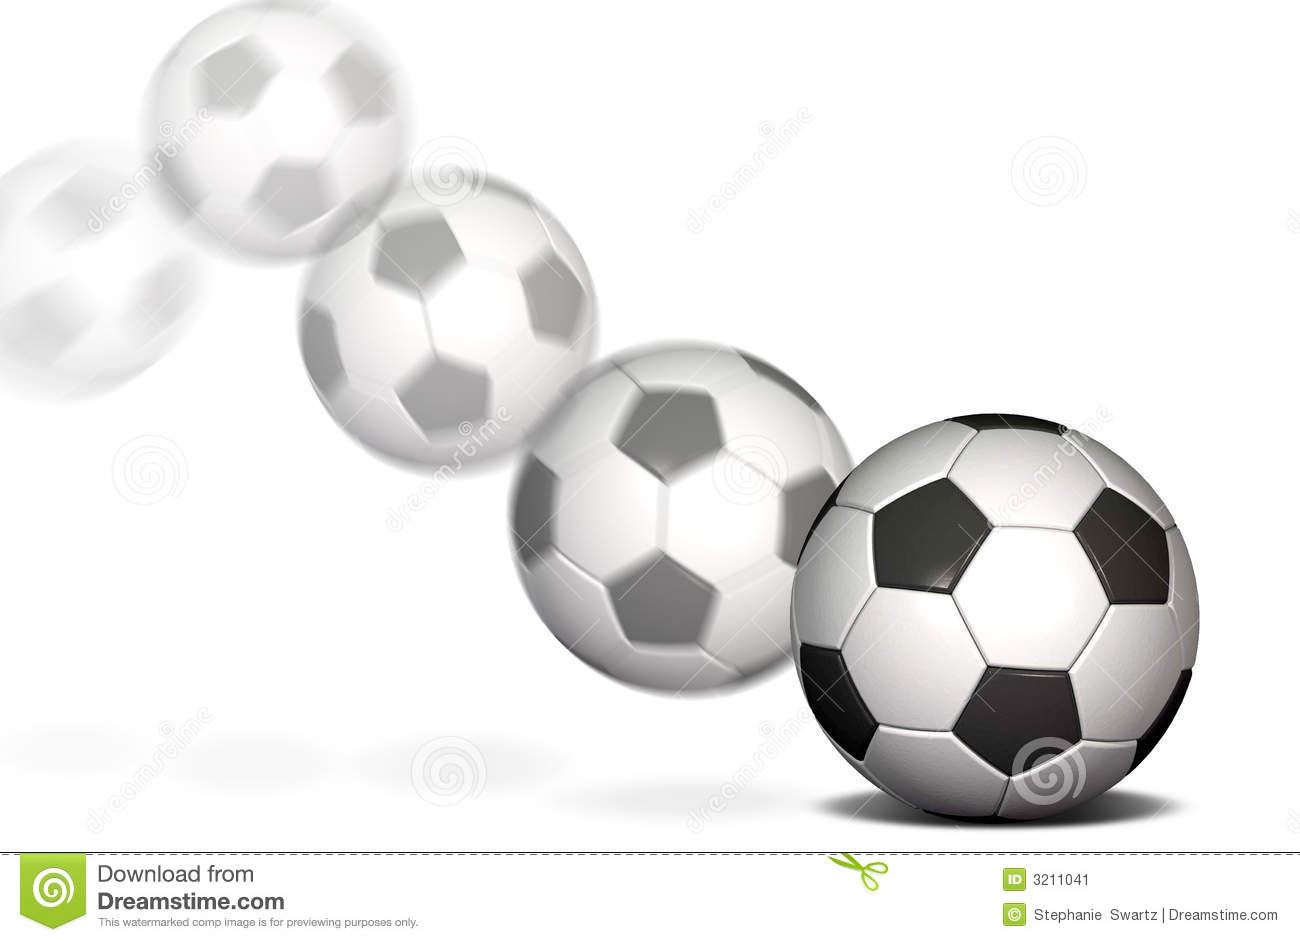 Soccer ball on a white background with a motion blur.